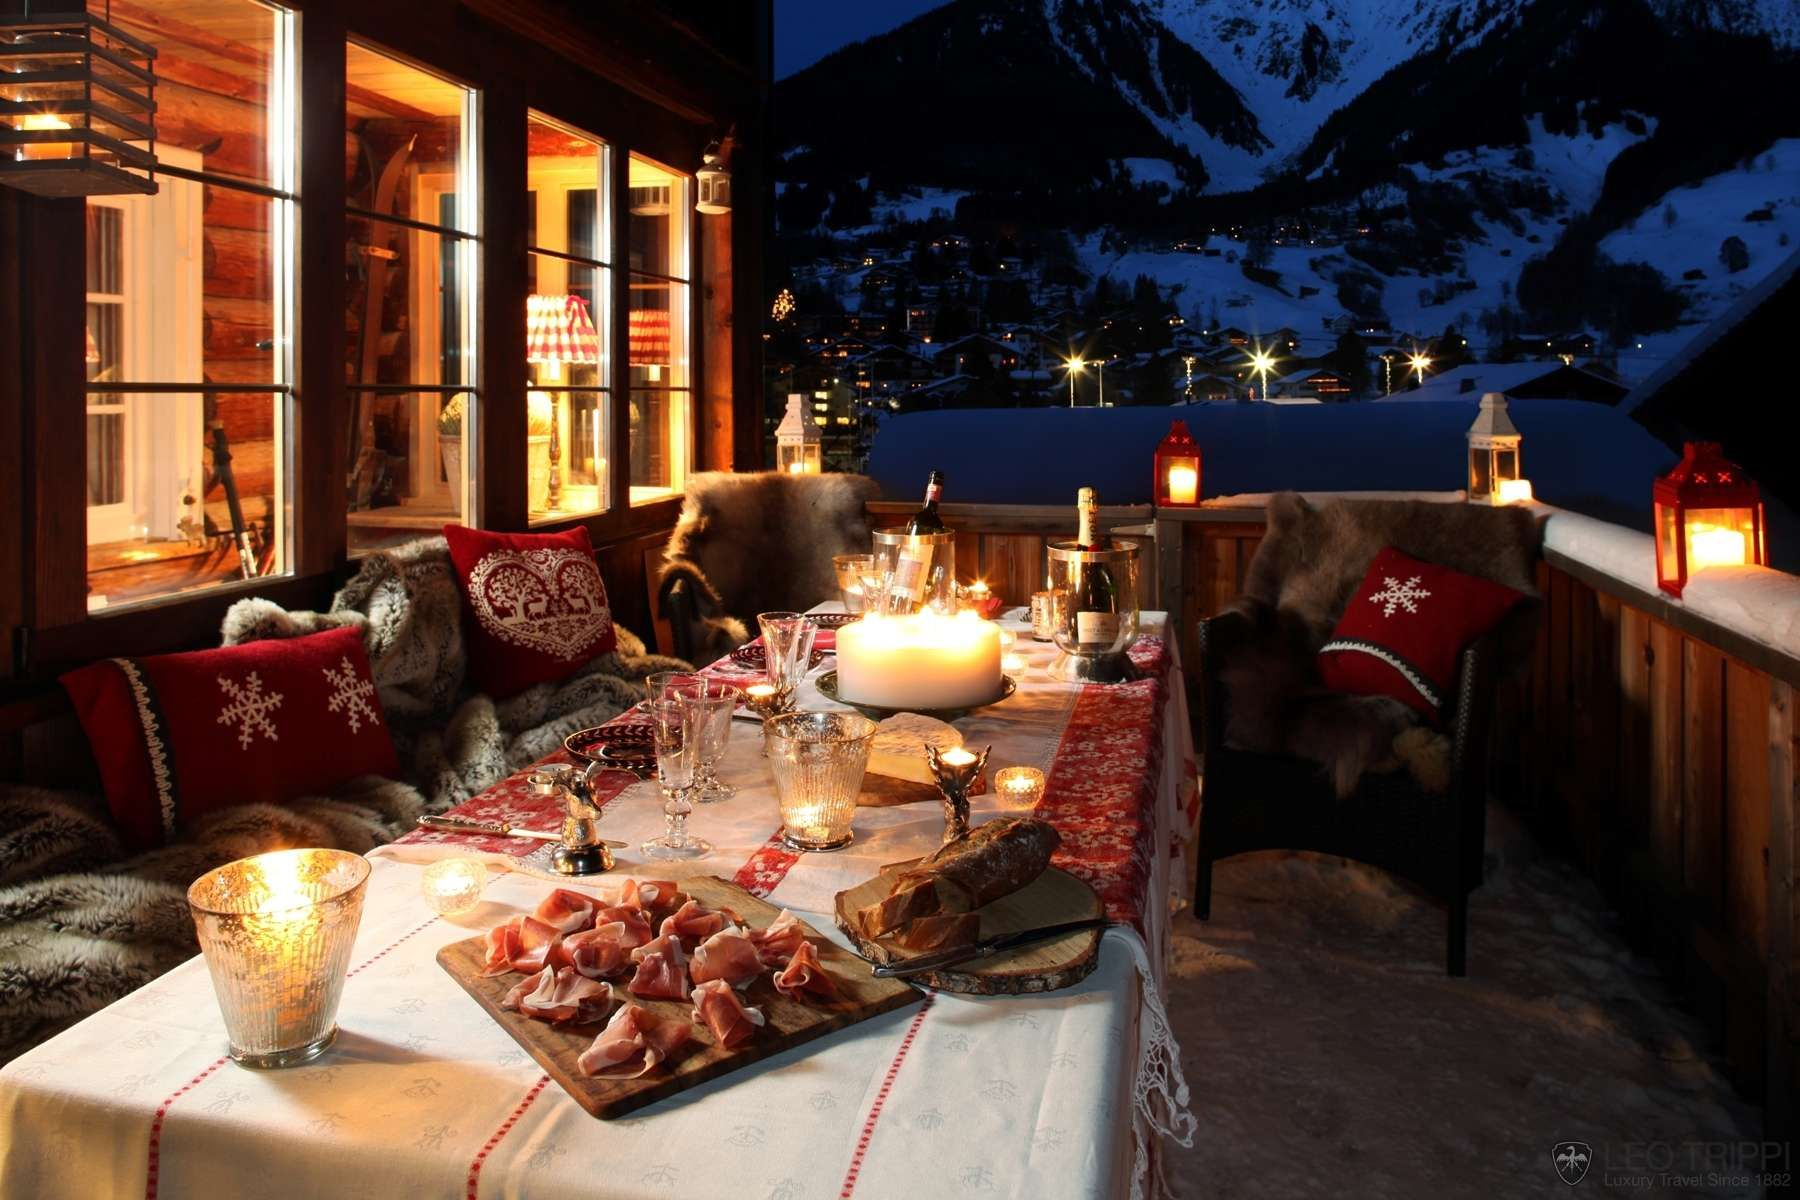 Chalet Bear Is A Luxury Chalet For Rent In Klosters, Voted By The Daily  Telegraph As Amongst The Top Ten Chalets To Rent In Switzerland.